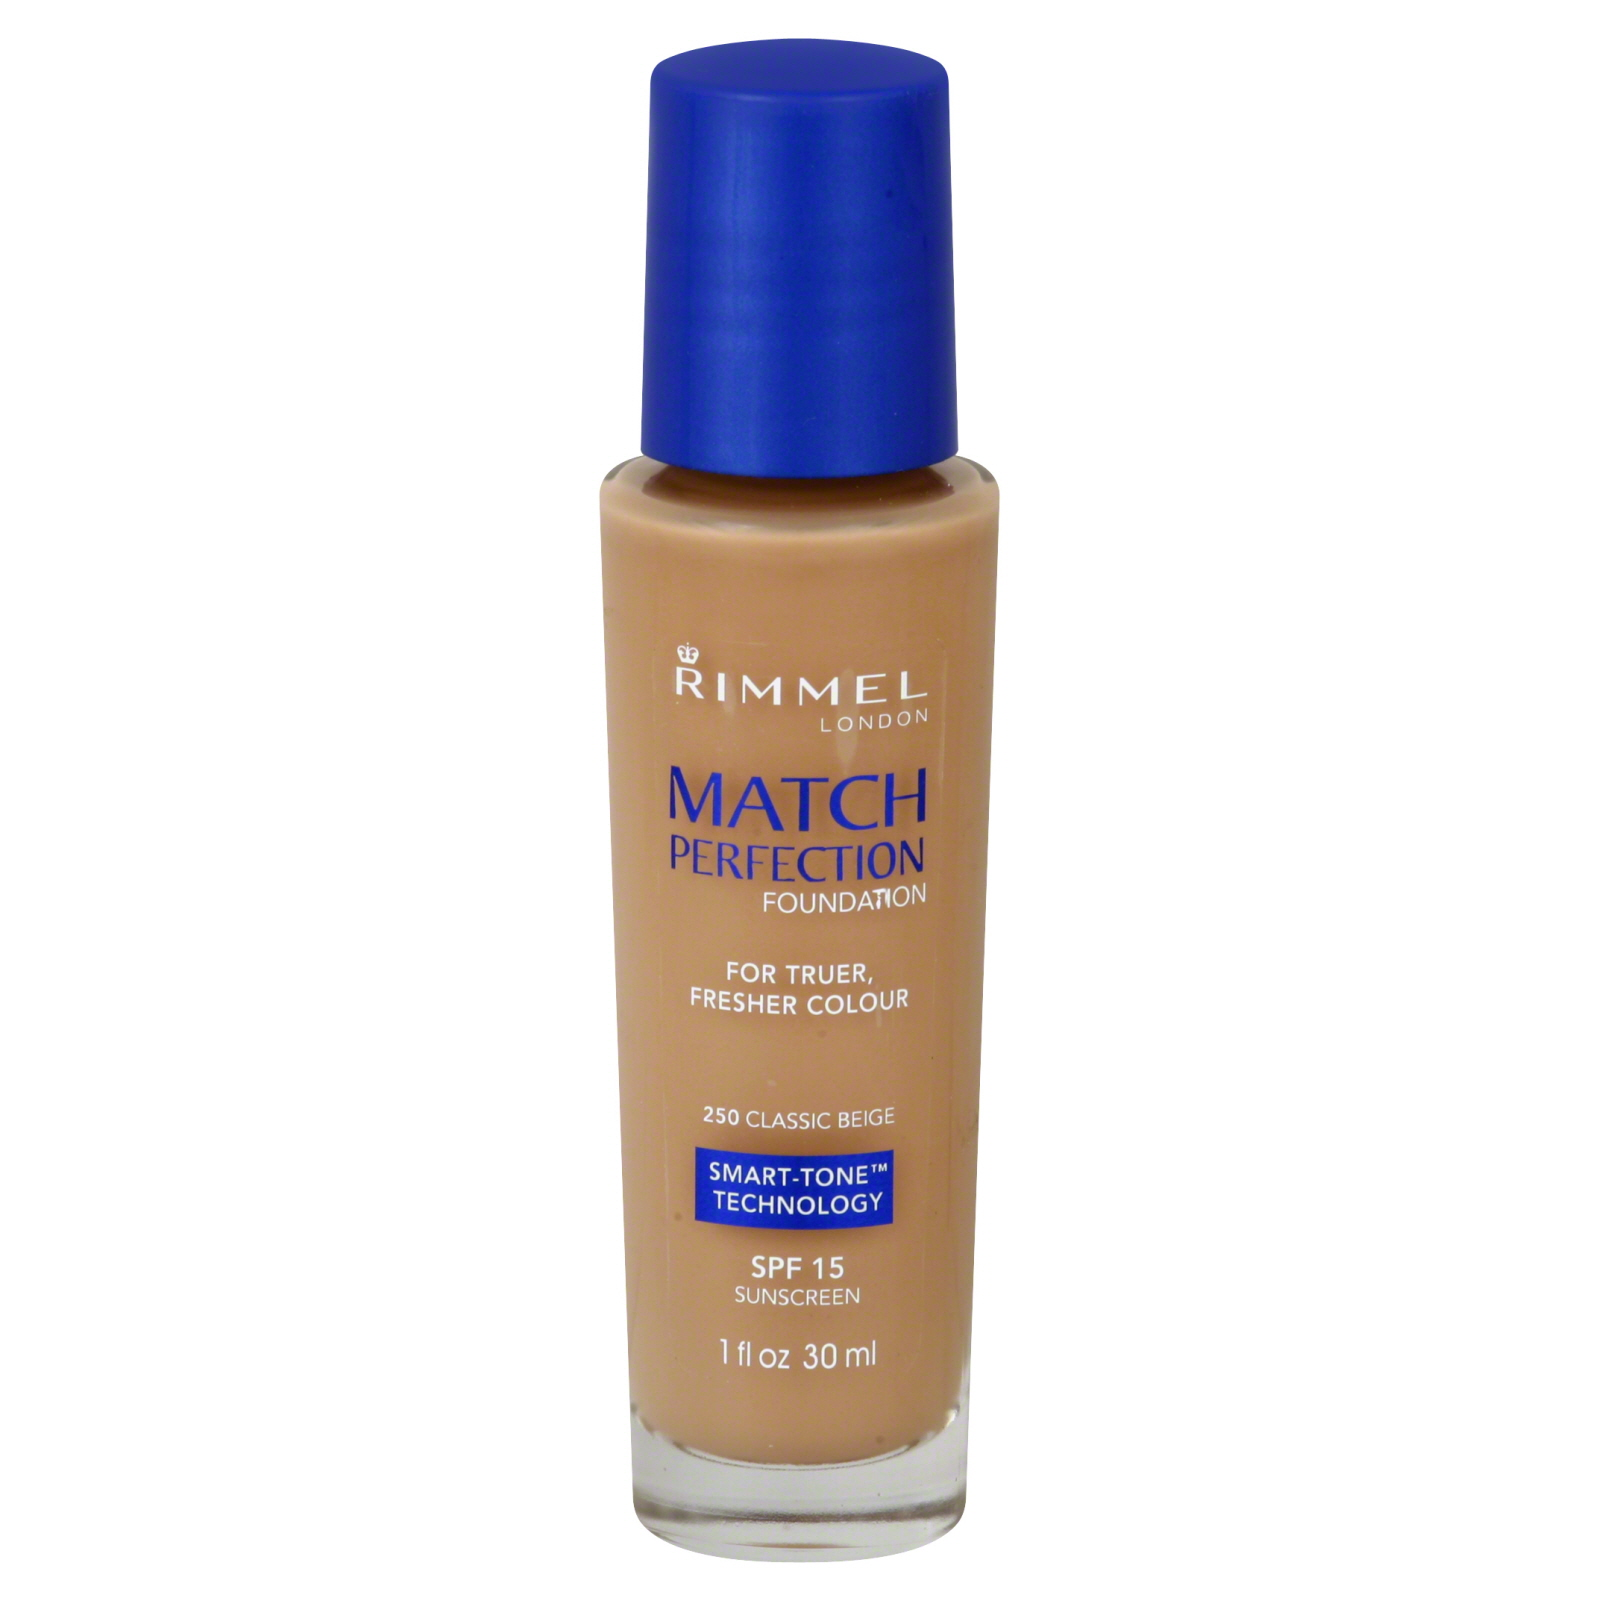 Match Perfection Foundation, Classic Beige